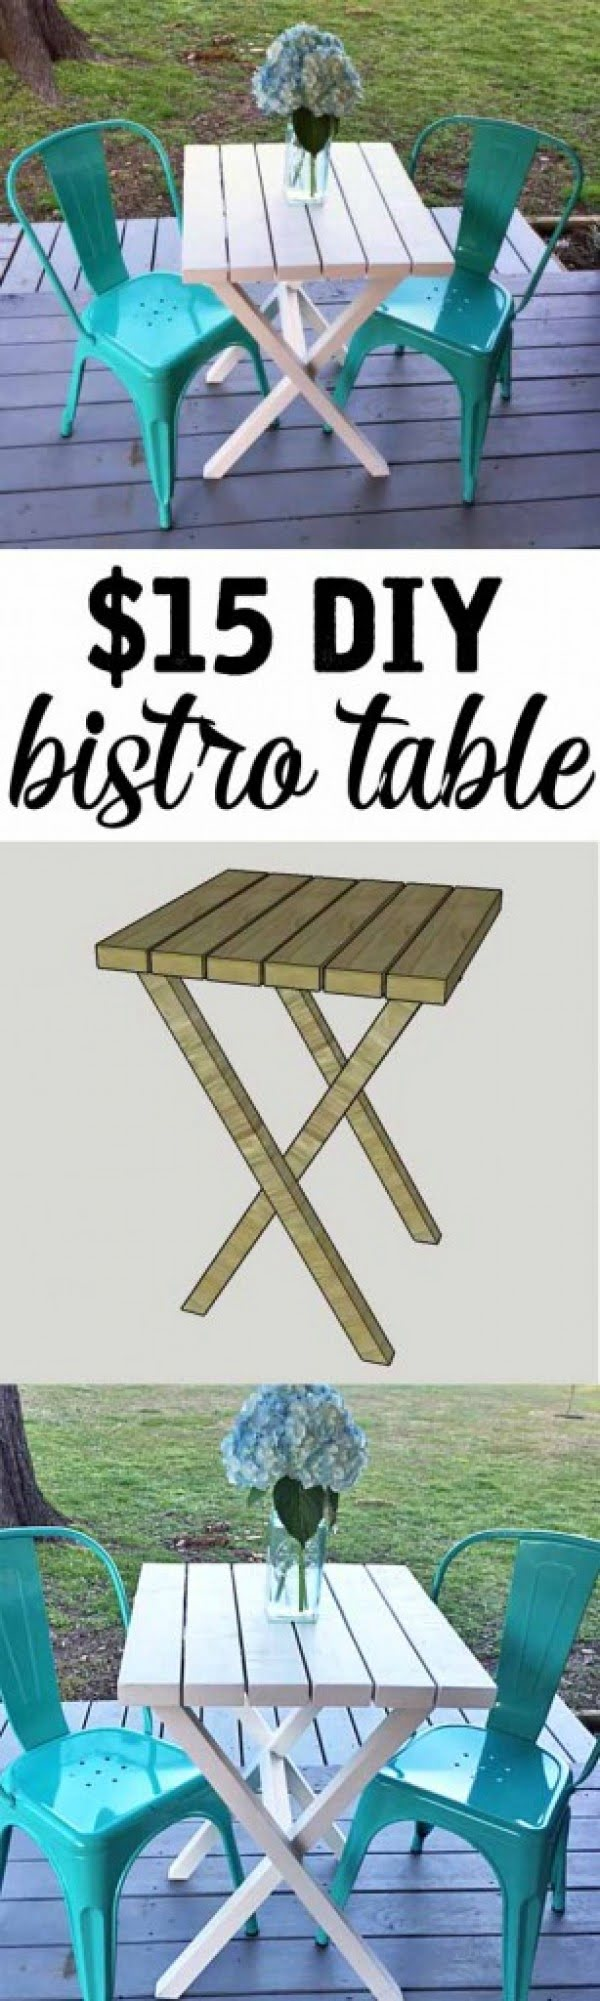 Make this easy DIY bistro table for under $15